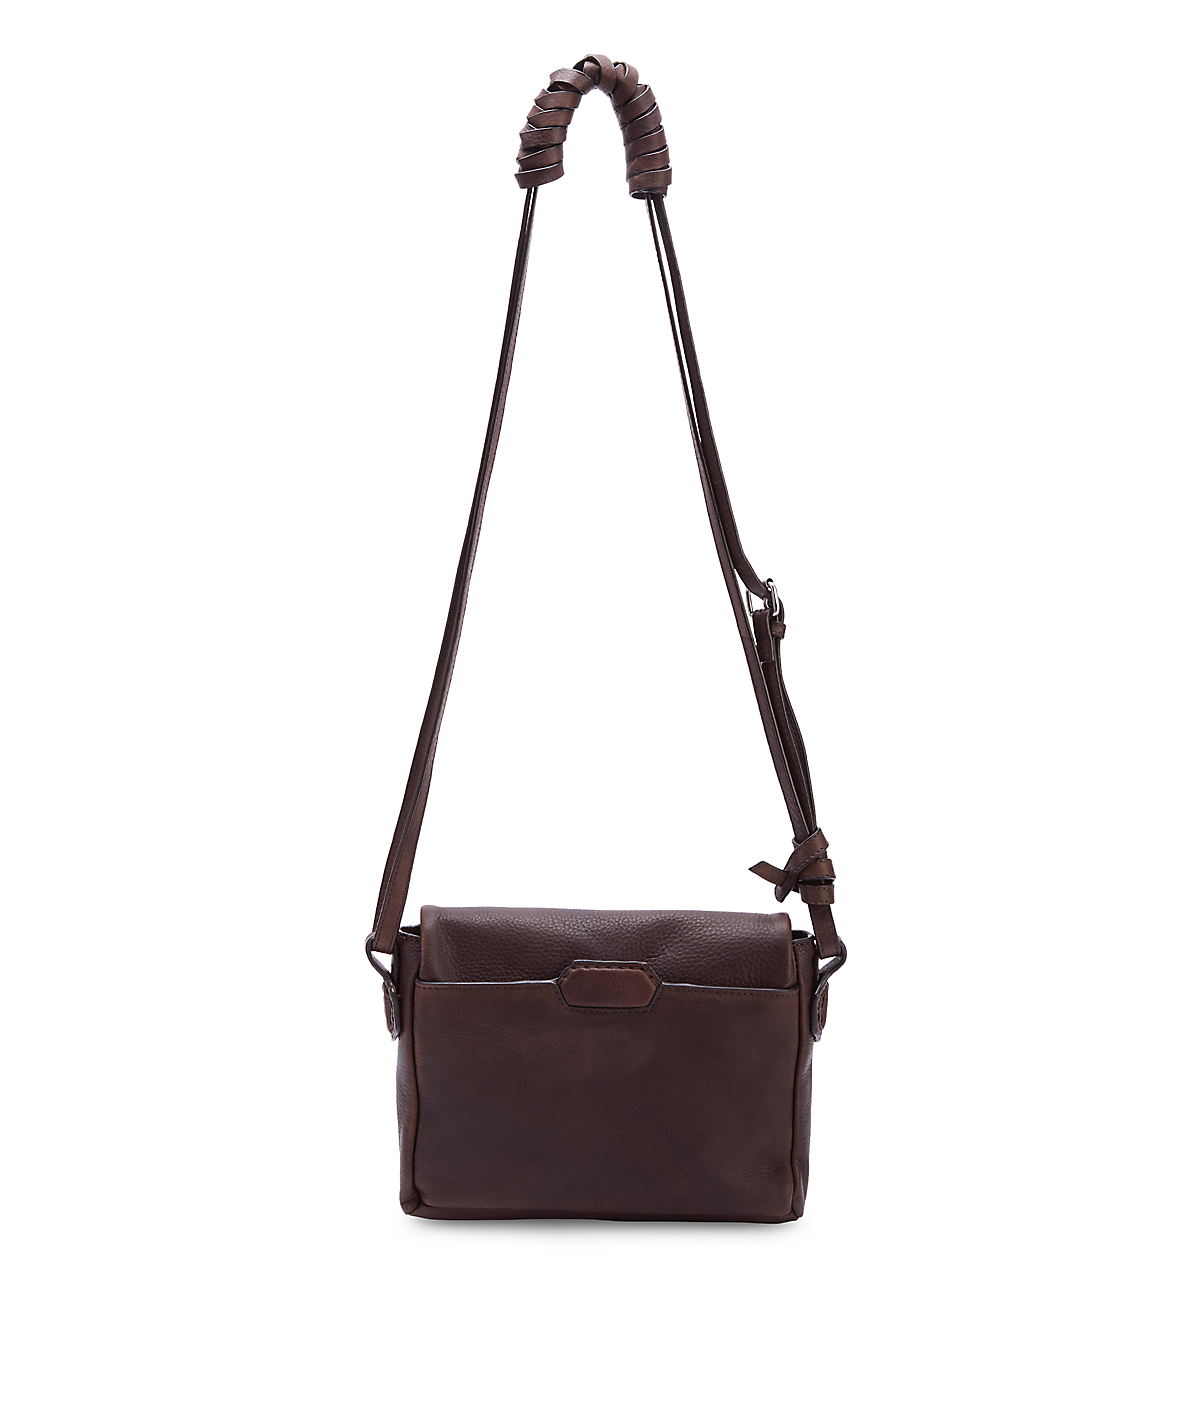 Abiko shoulder bag from liebeskind